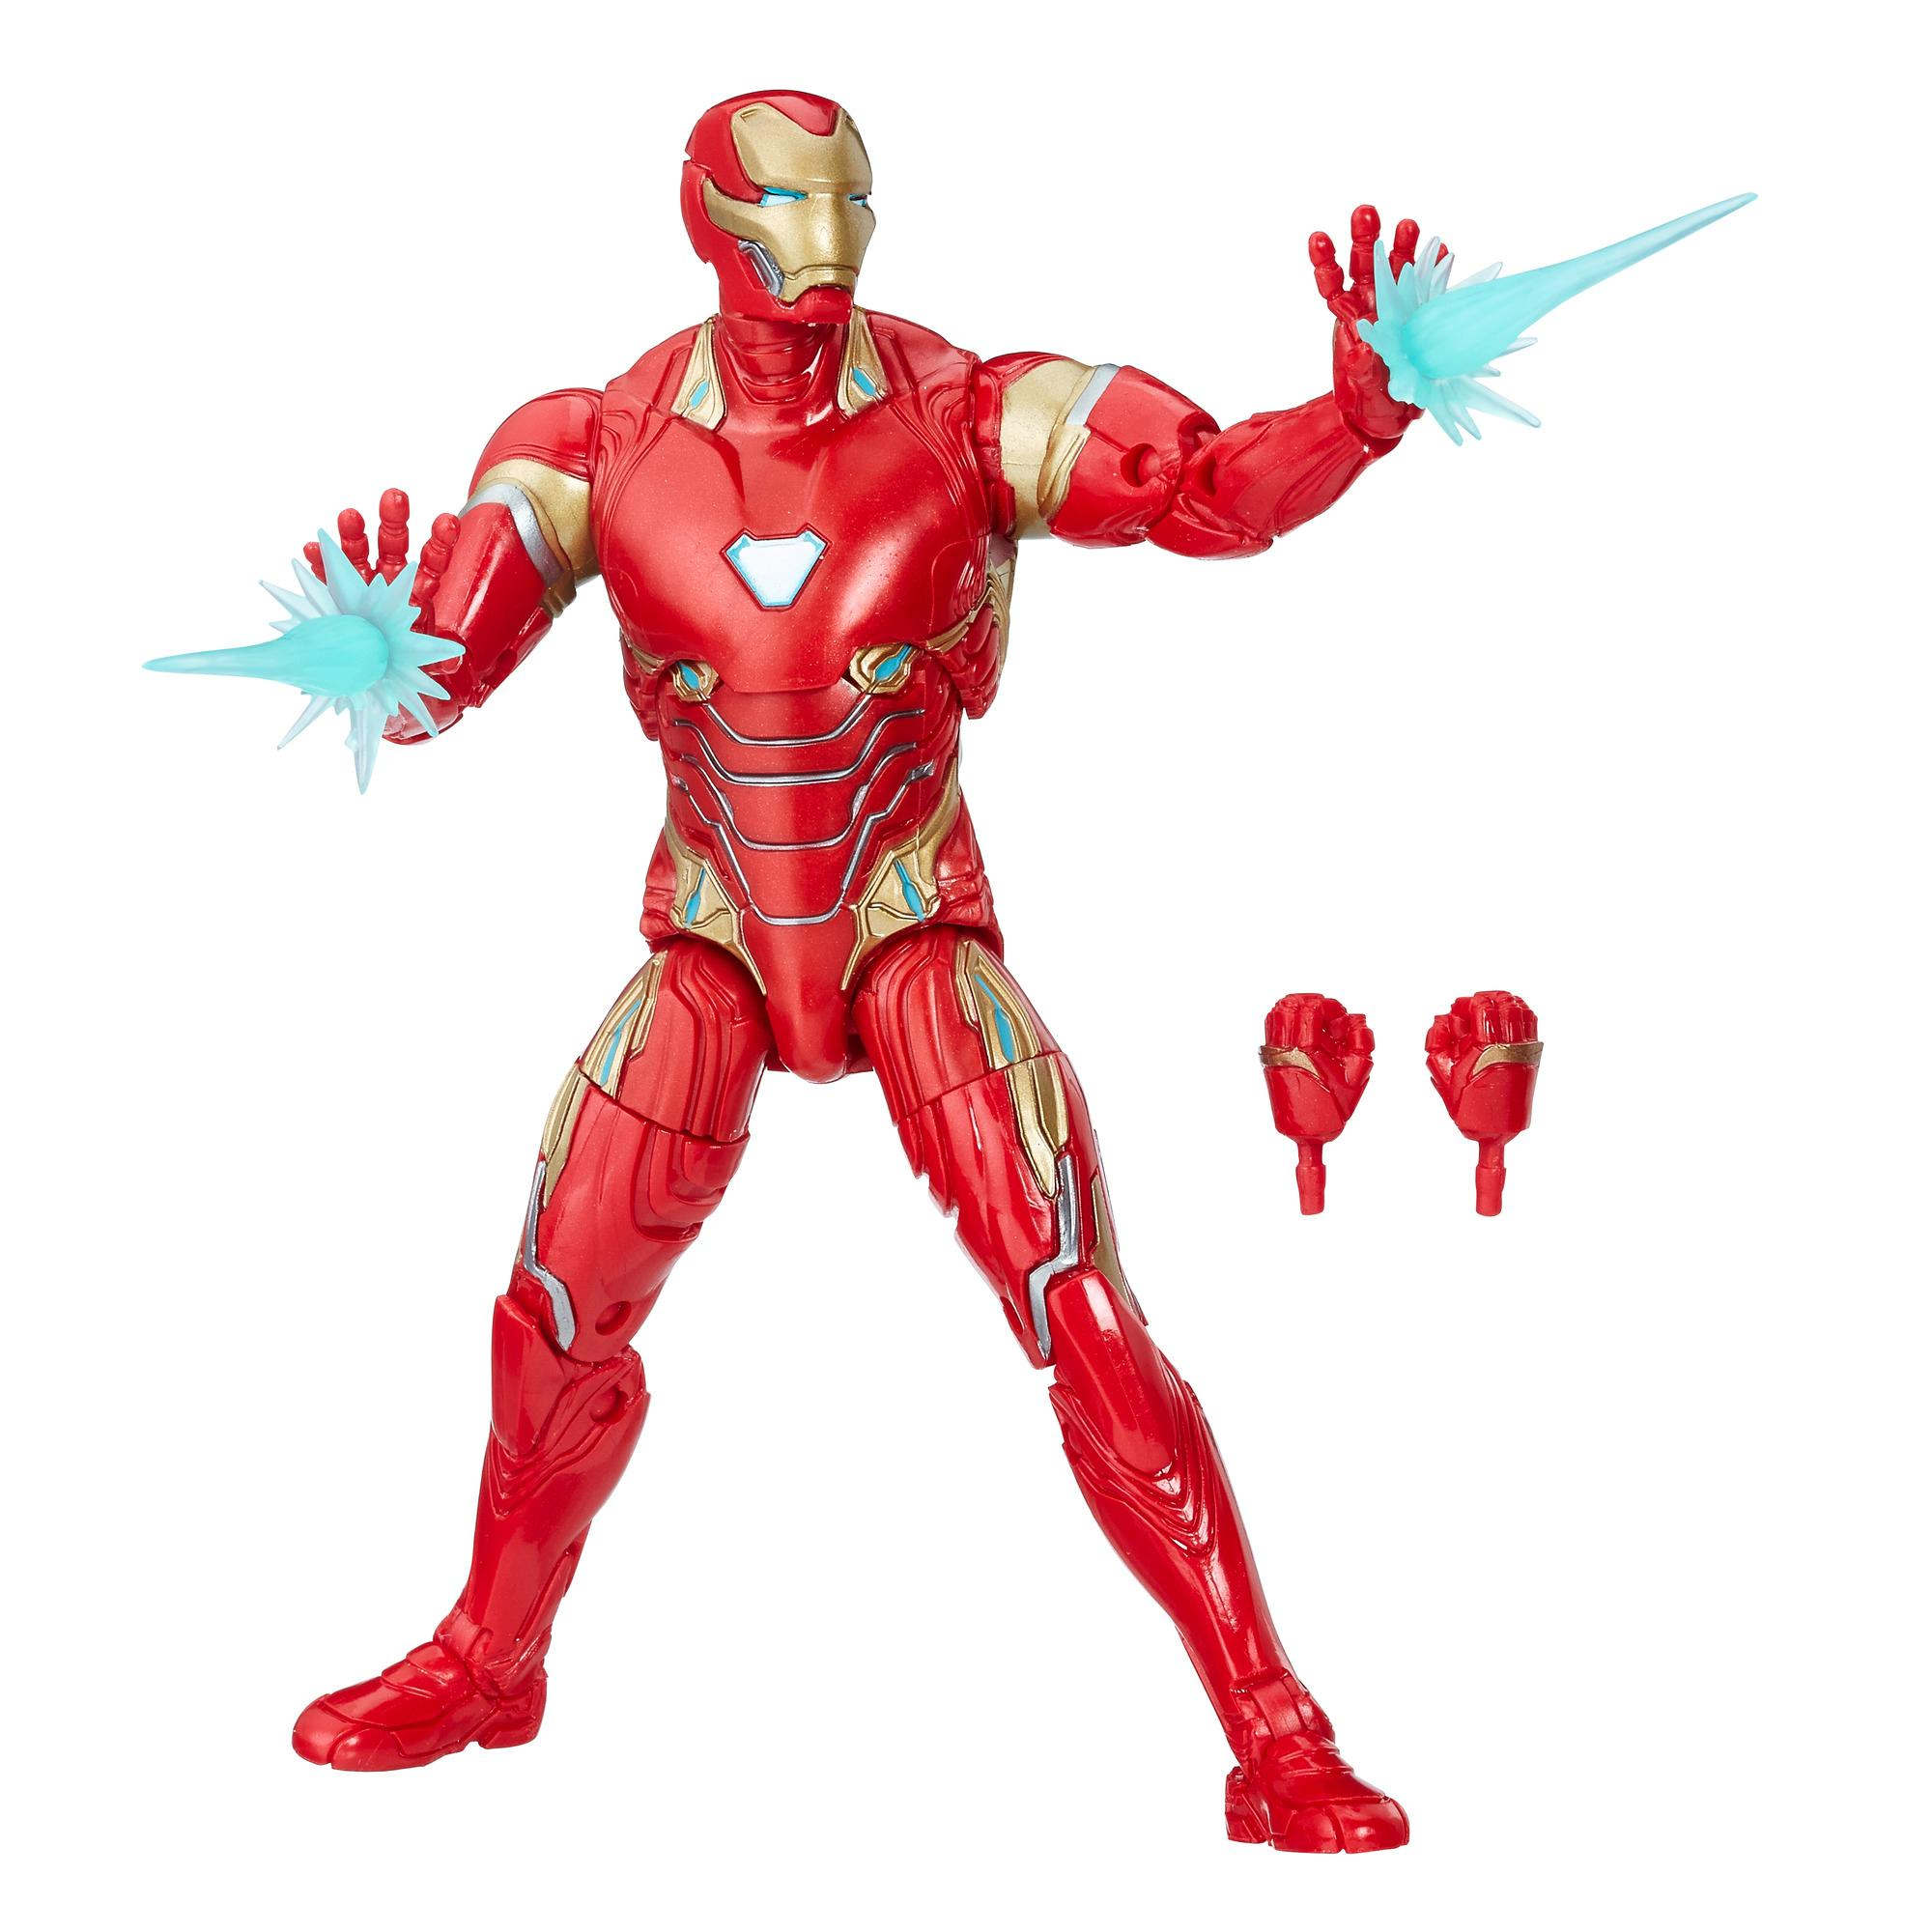 Avengers série Marvel Legends - Figurine Iron Man de 15 cm